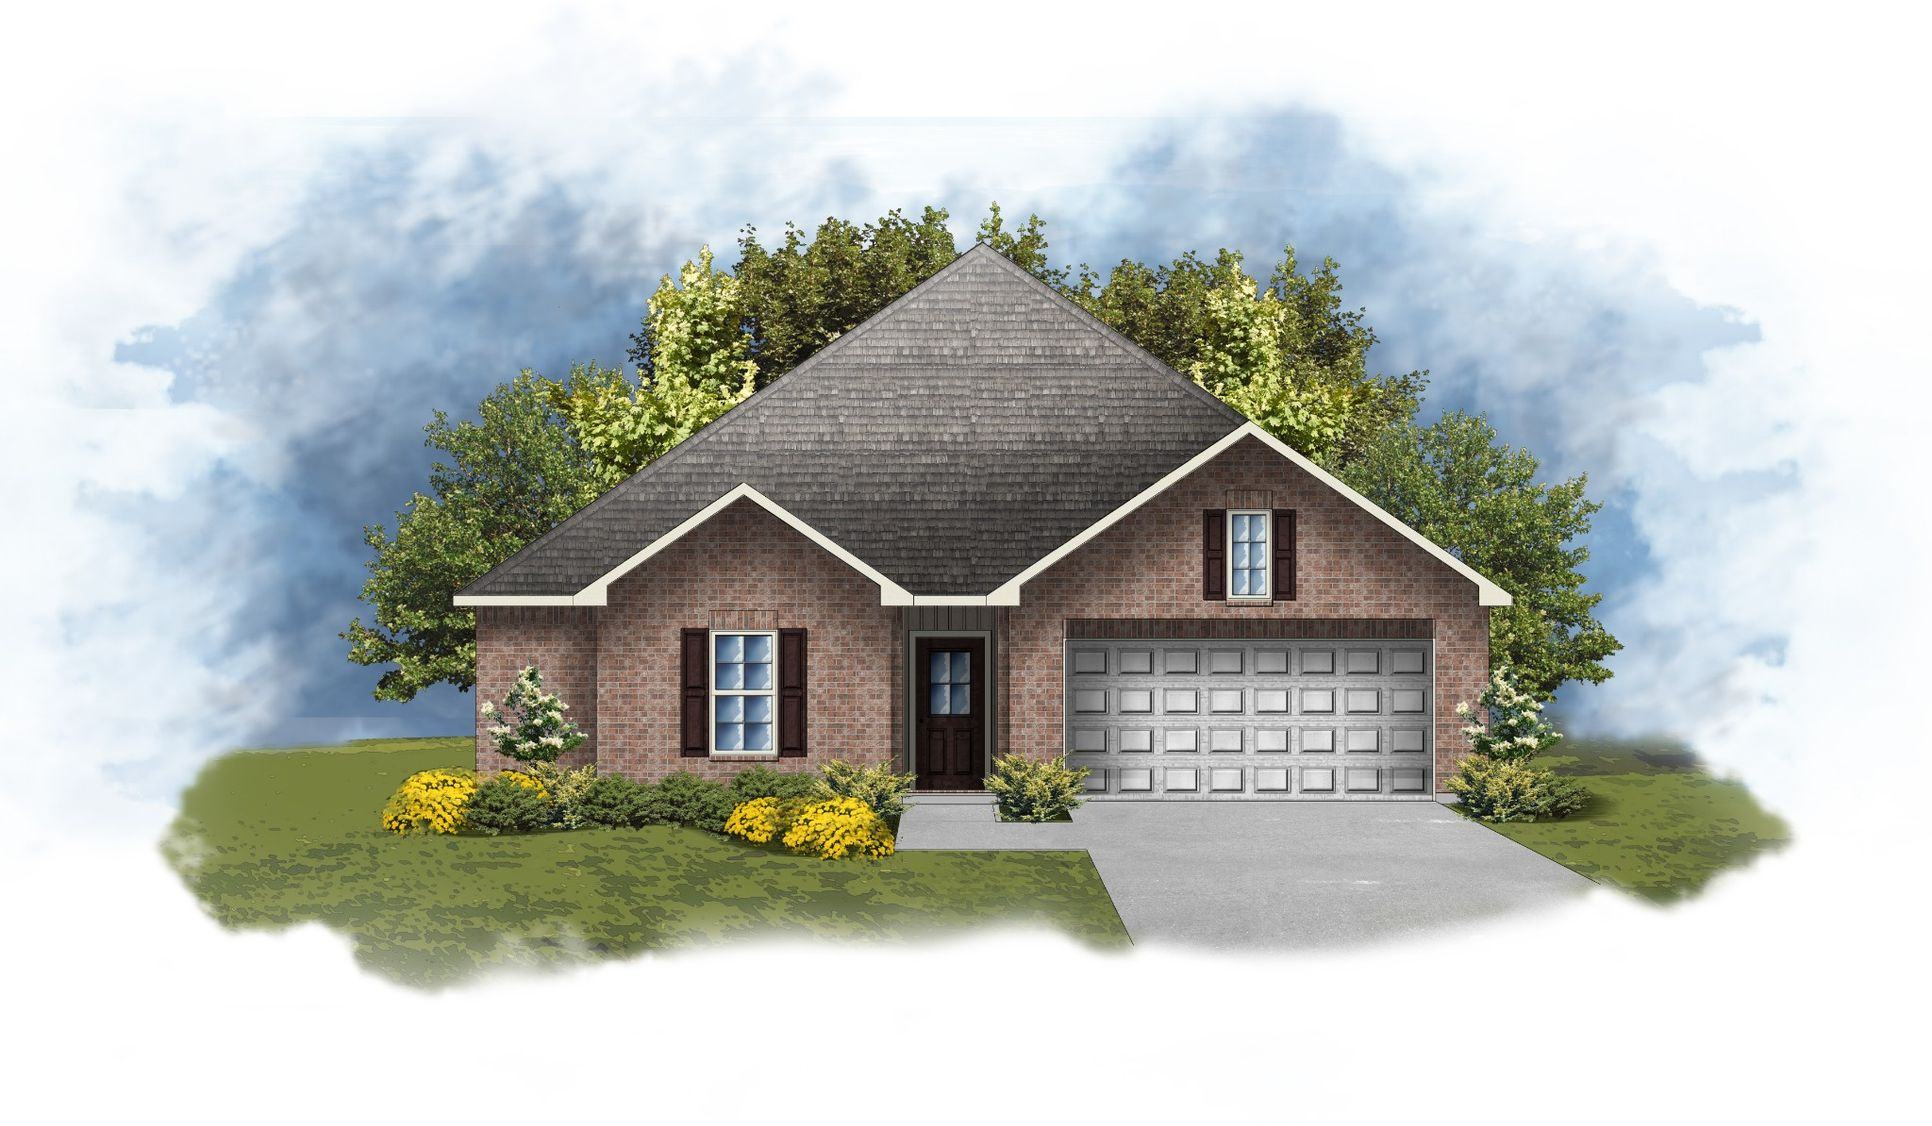 Hillsborough IV G Front Elevation Image - DSLD Homes